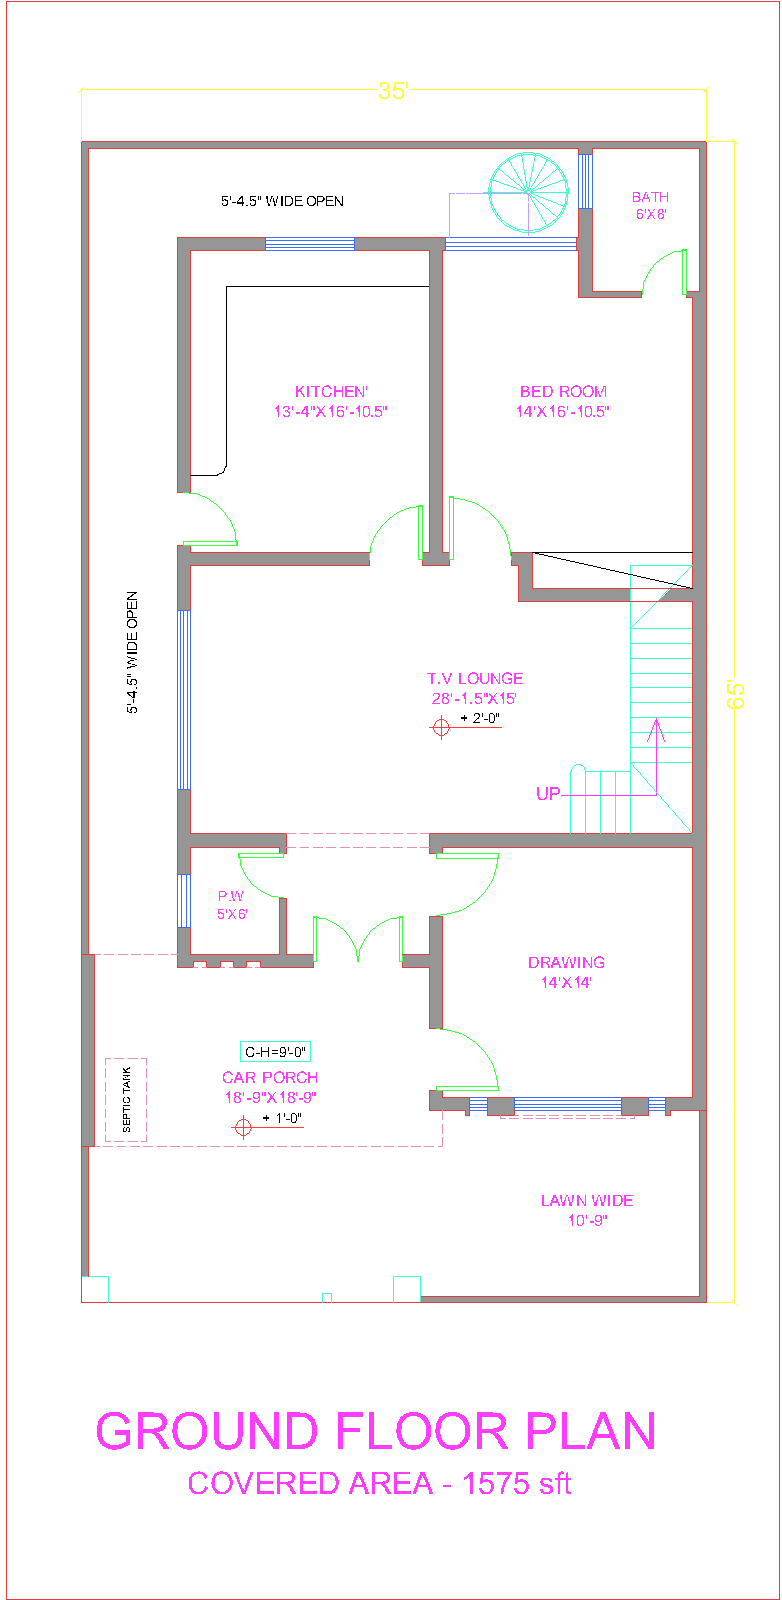 10 marla house maps in pakistan